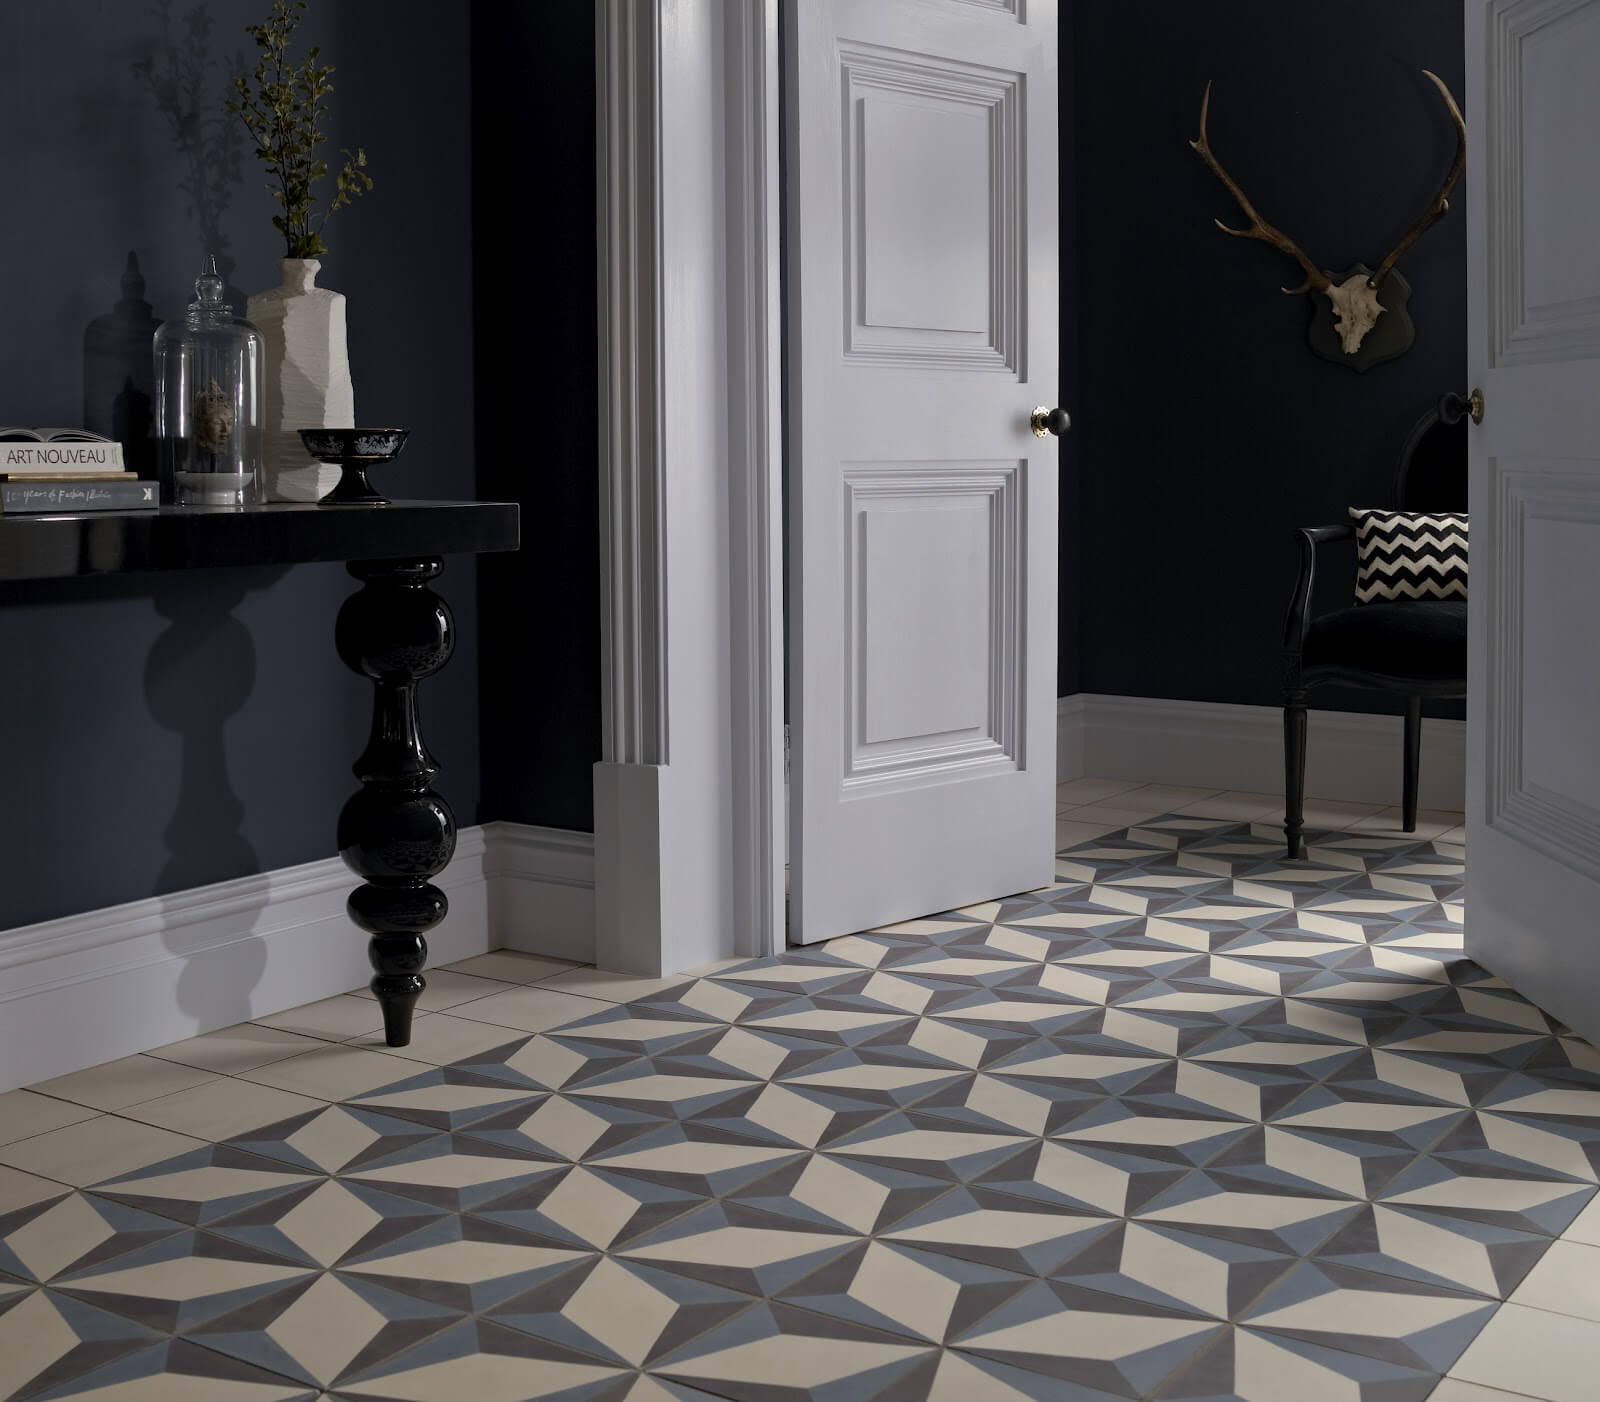 chessboard tile in the classic contrasting interior